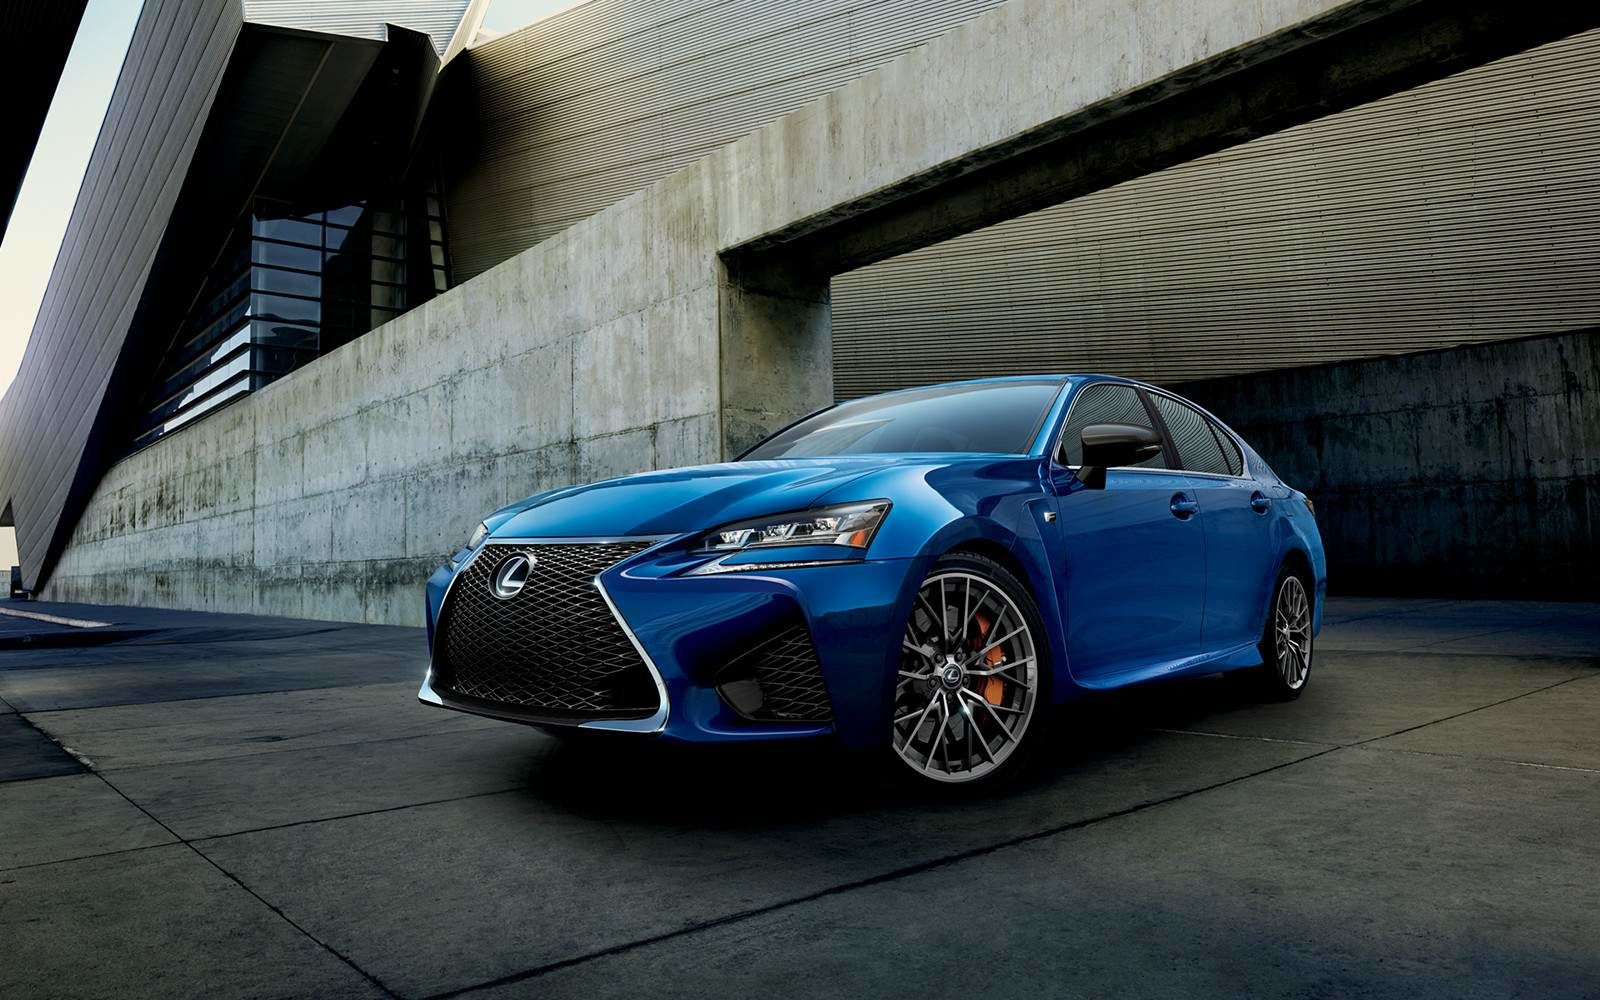 Lexus 2020 Gsf Ultrasound Blue Mica 2.0 Front Right L